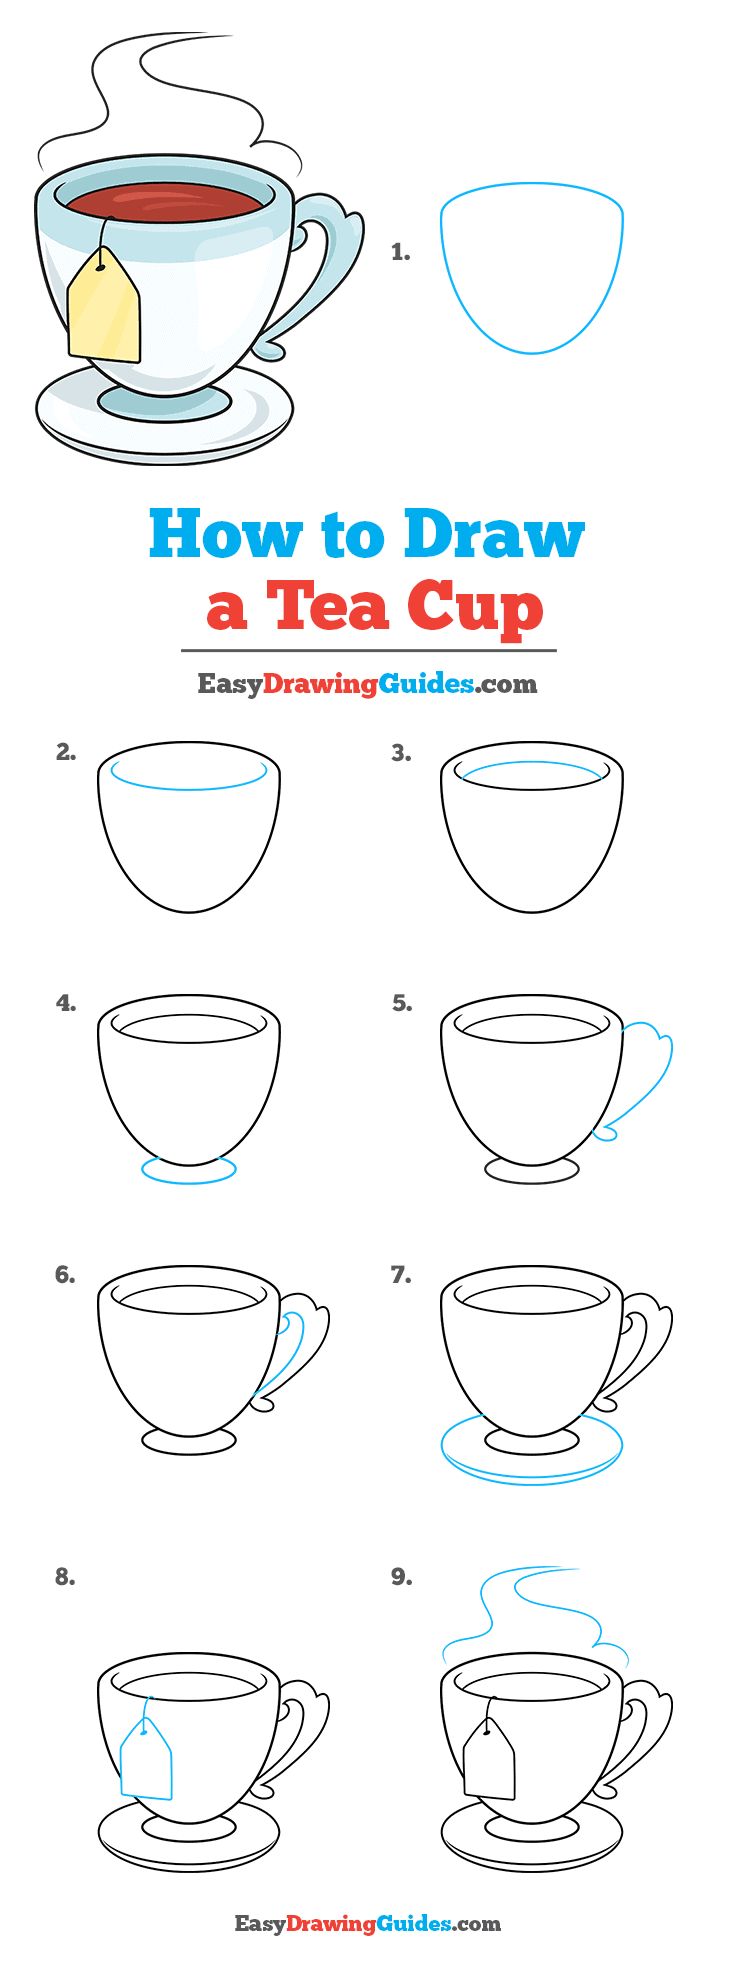 How to Draw Tea Cup